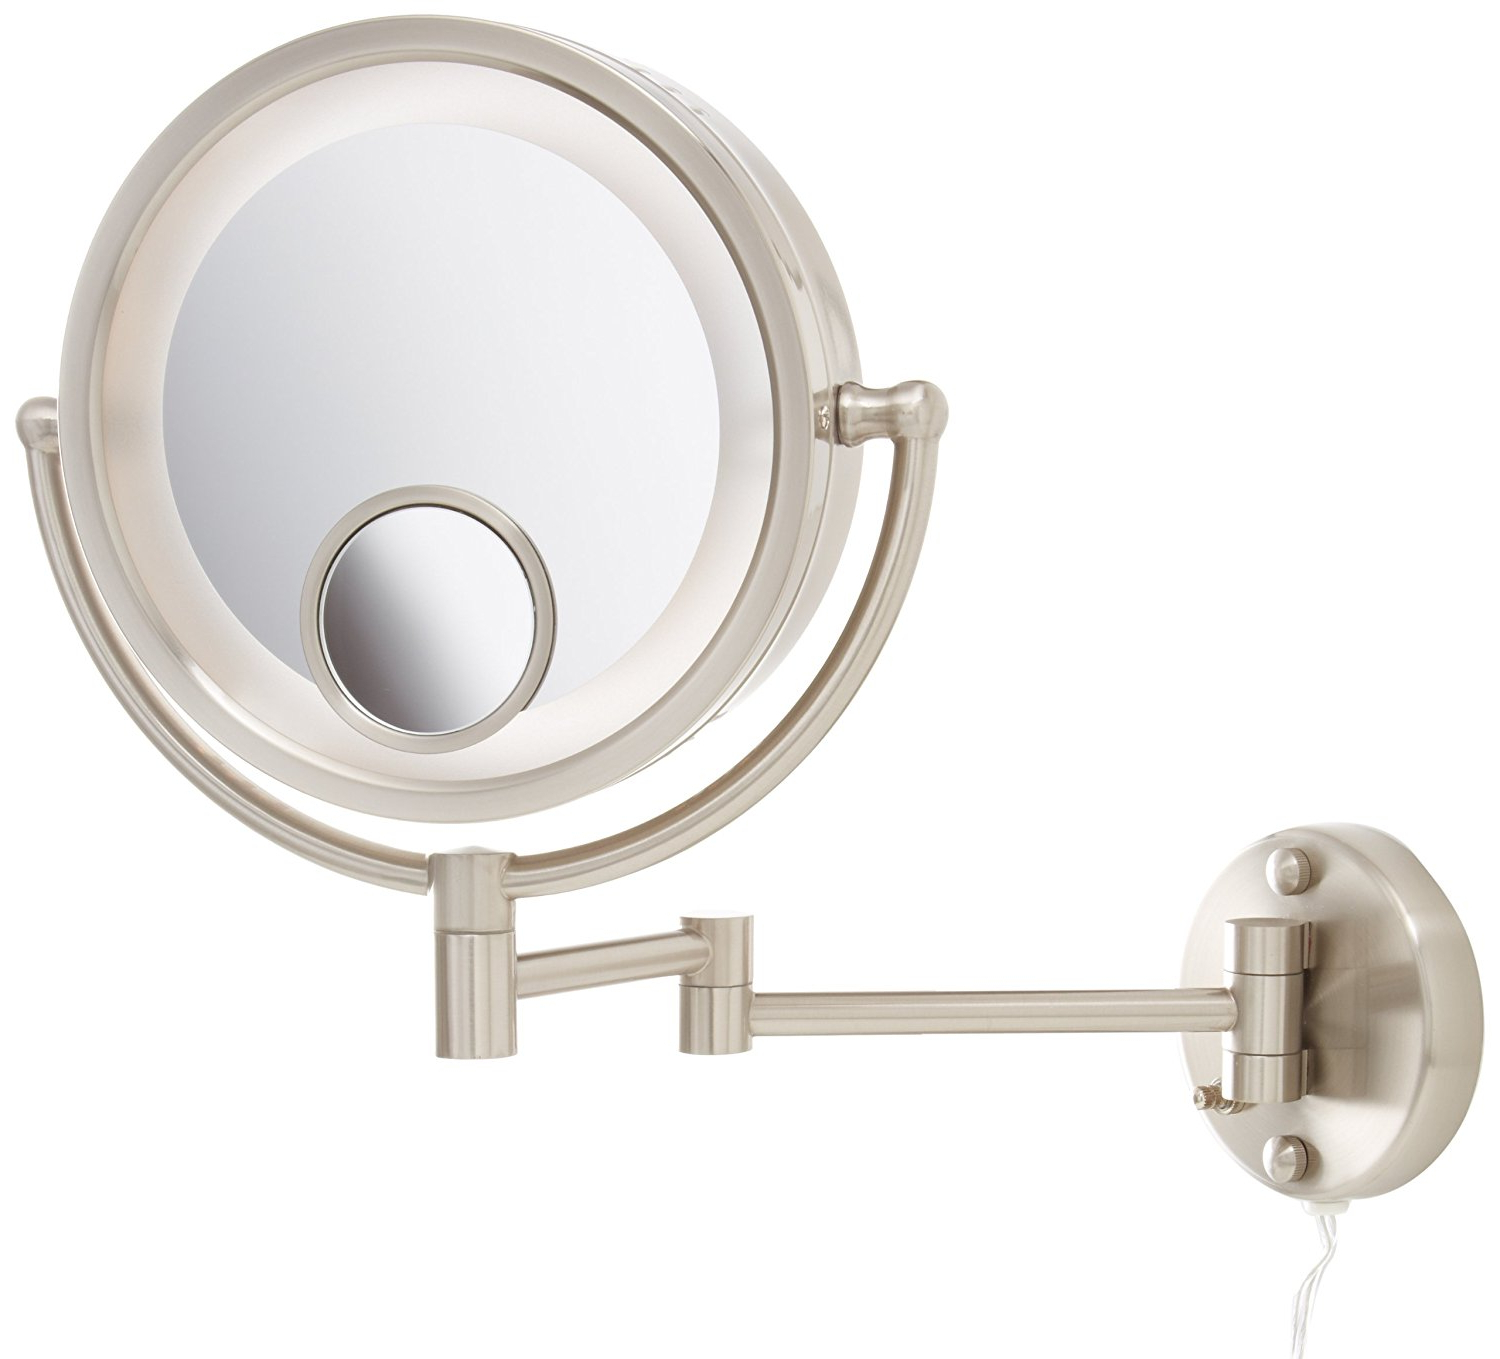 Inspirations: Outstanding Lighted Magnifying Mirror Design For Home For Preferred Magnified Wall Mirrors (View 17 of 20)